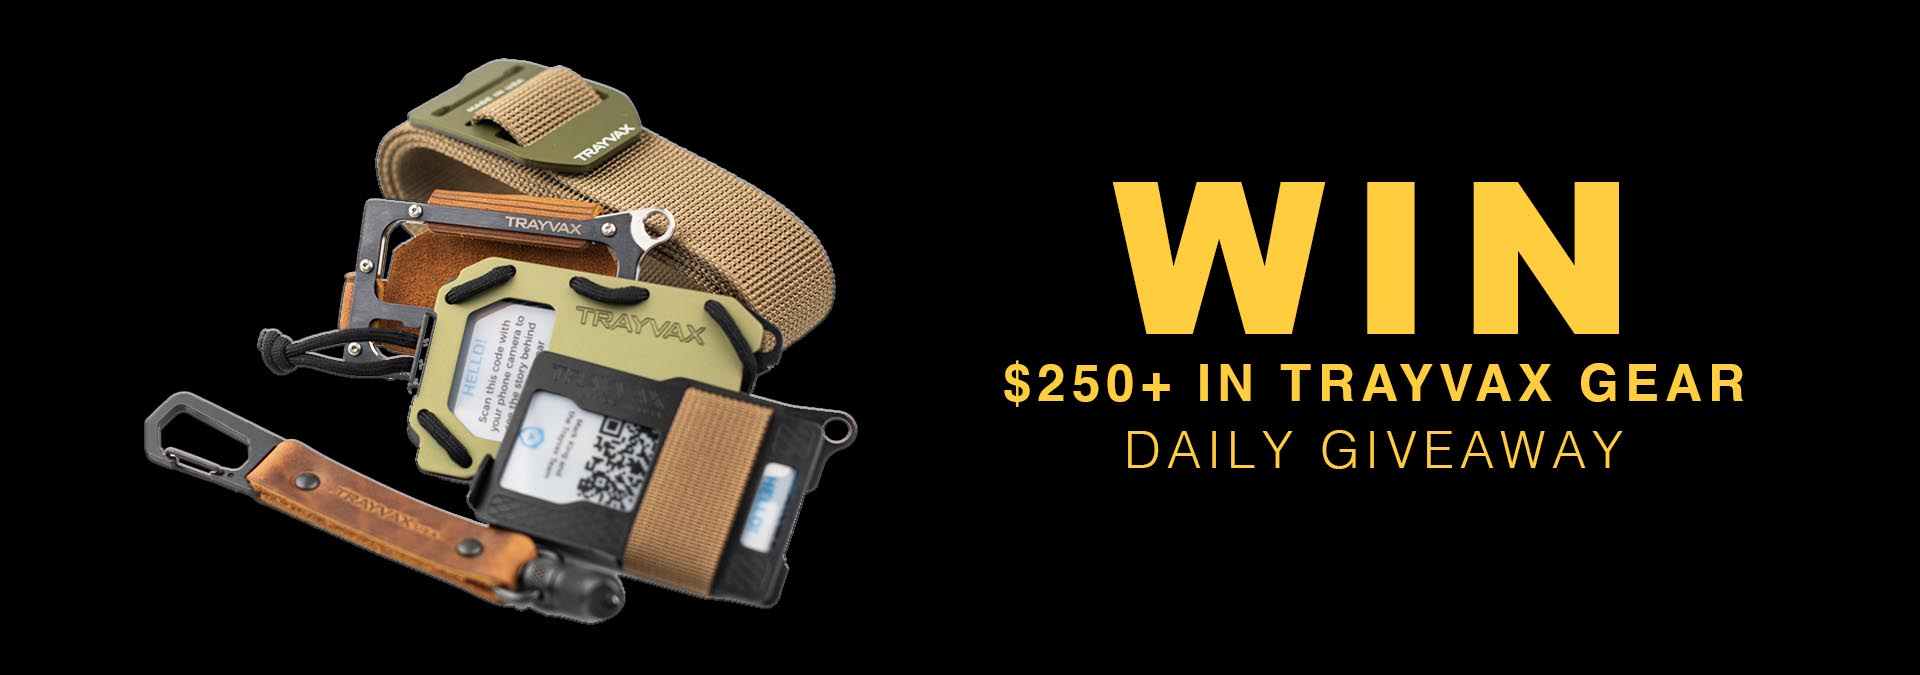 Trayvax Daily Giveaway Package